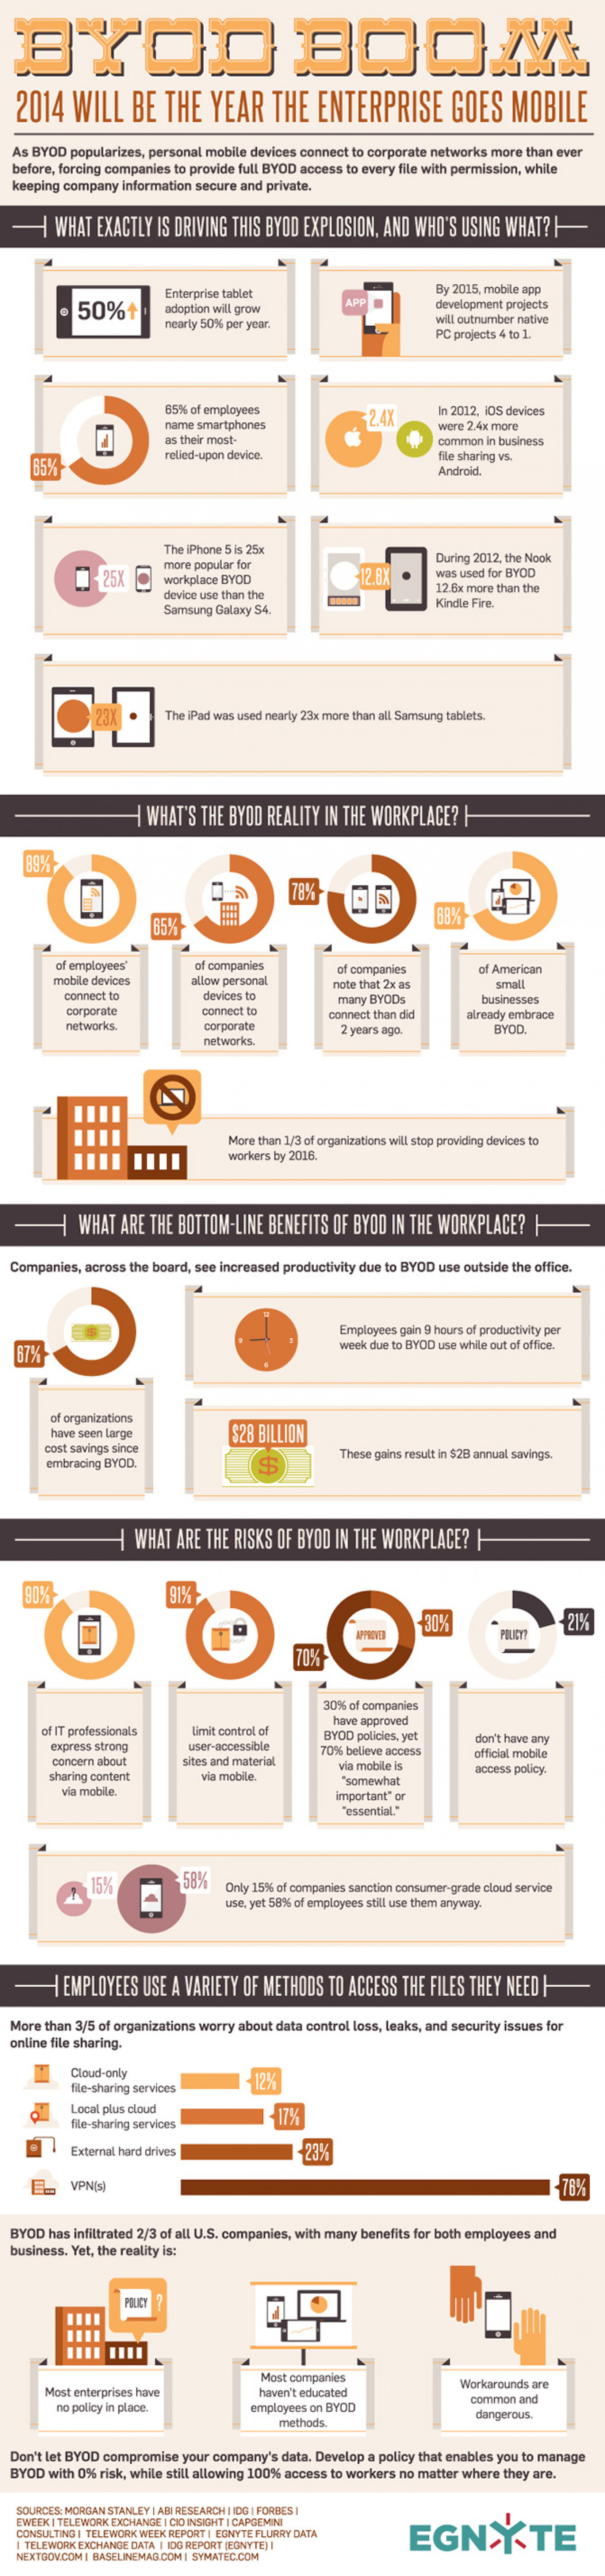 2014 will be the year enterprise goes mobile Infographic